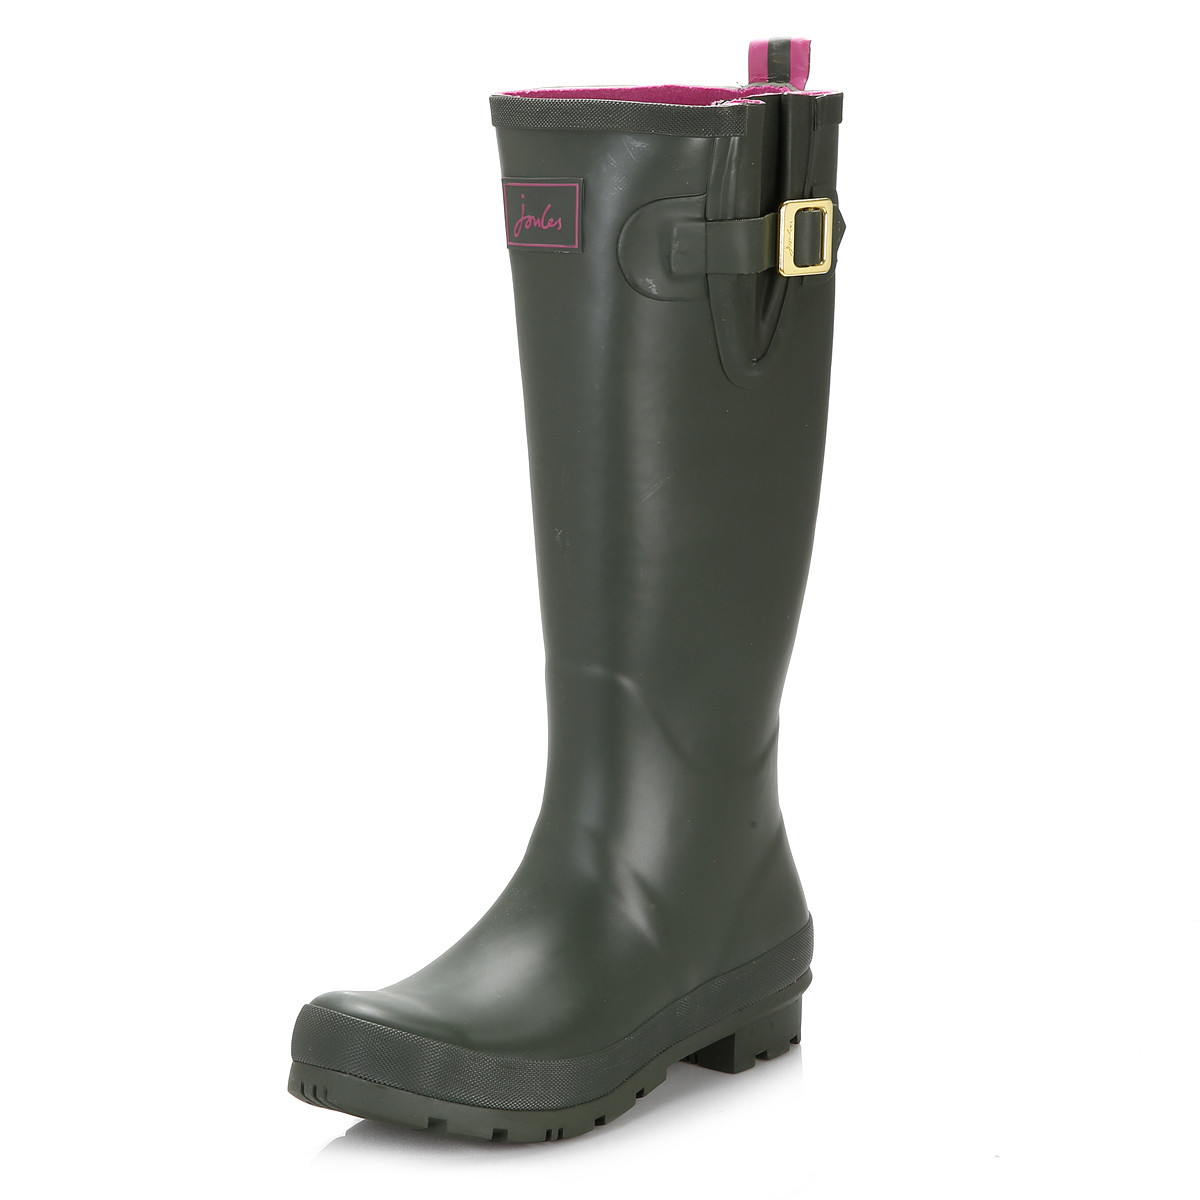 ceramic rain boot vase of joules womens wellies wellington boots rubber shoes various inside joules womens wellies wellington boots rubber shoes various